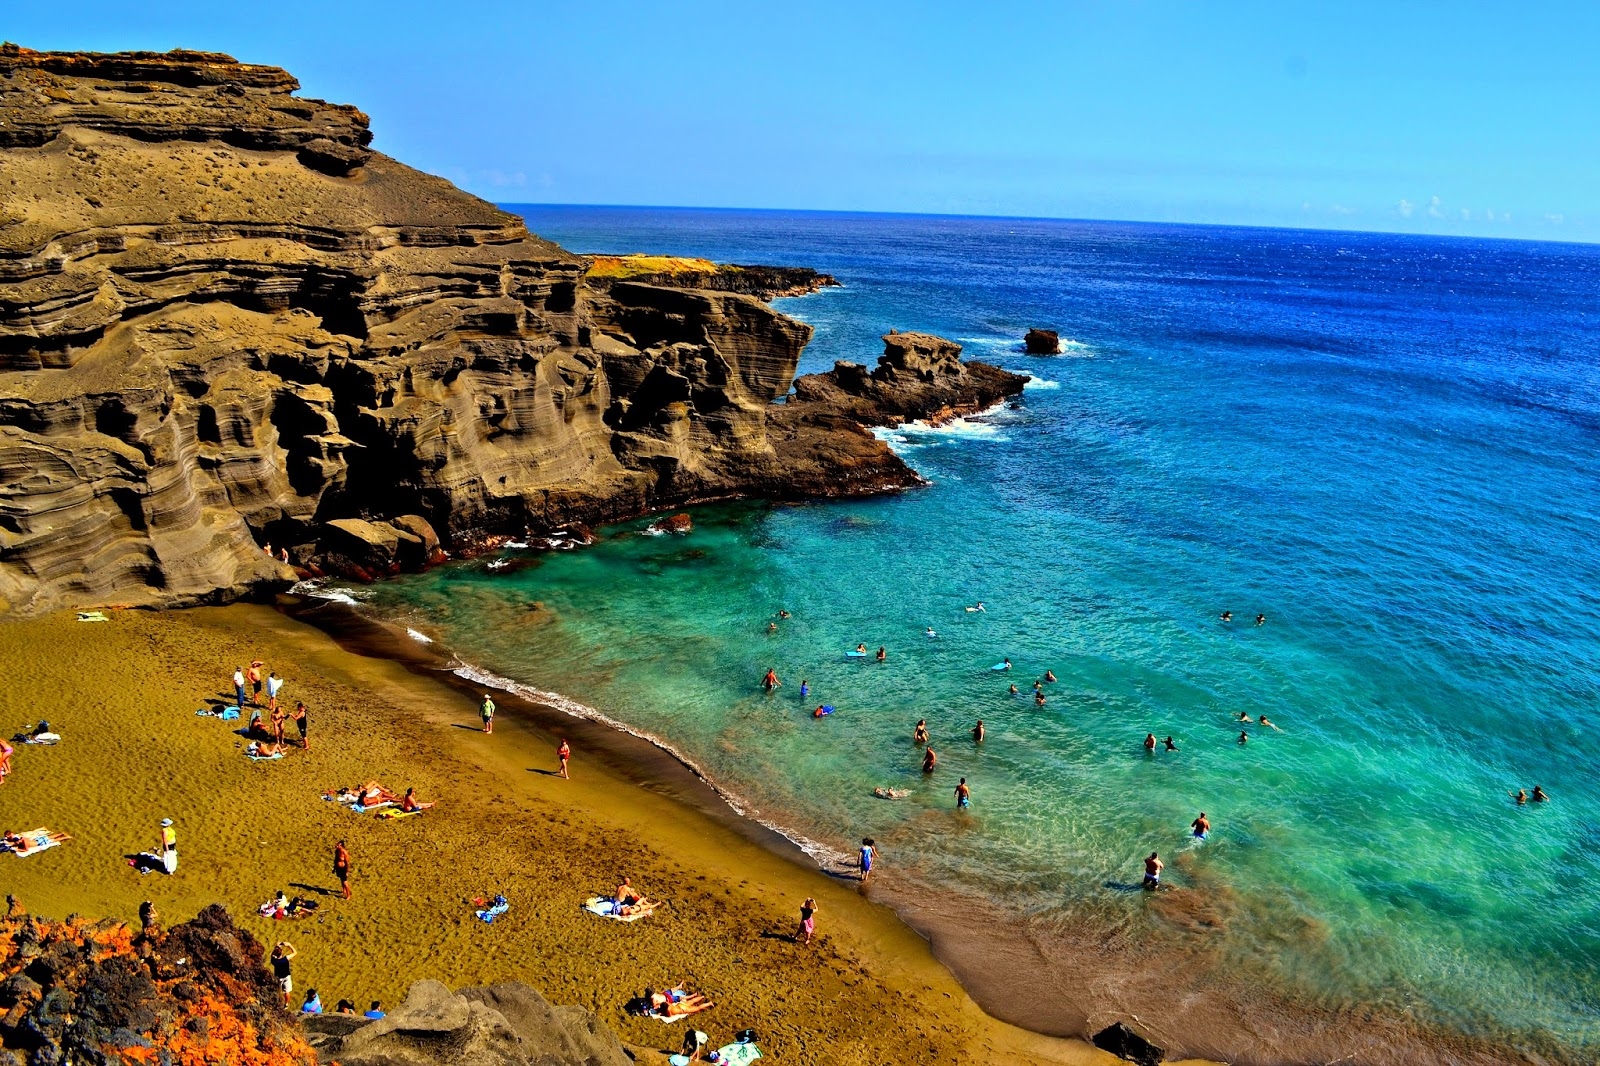 Family Travel Blog : 5 best beaches on the Big Island of Hawaii